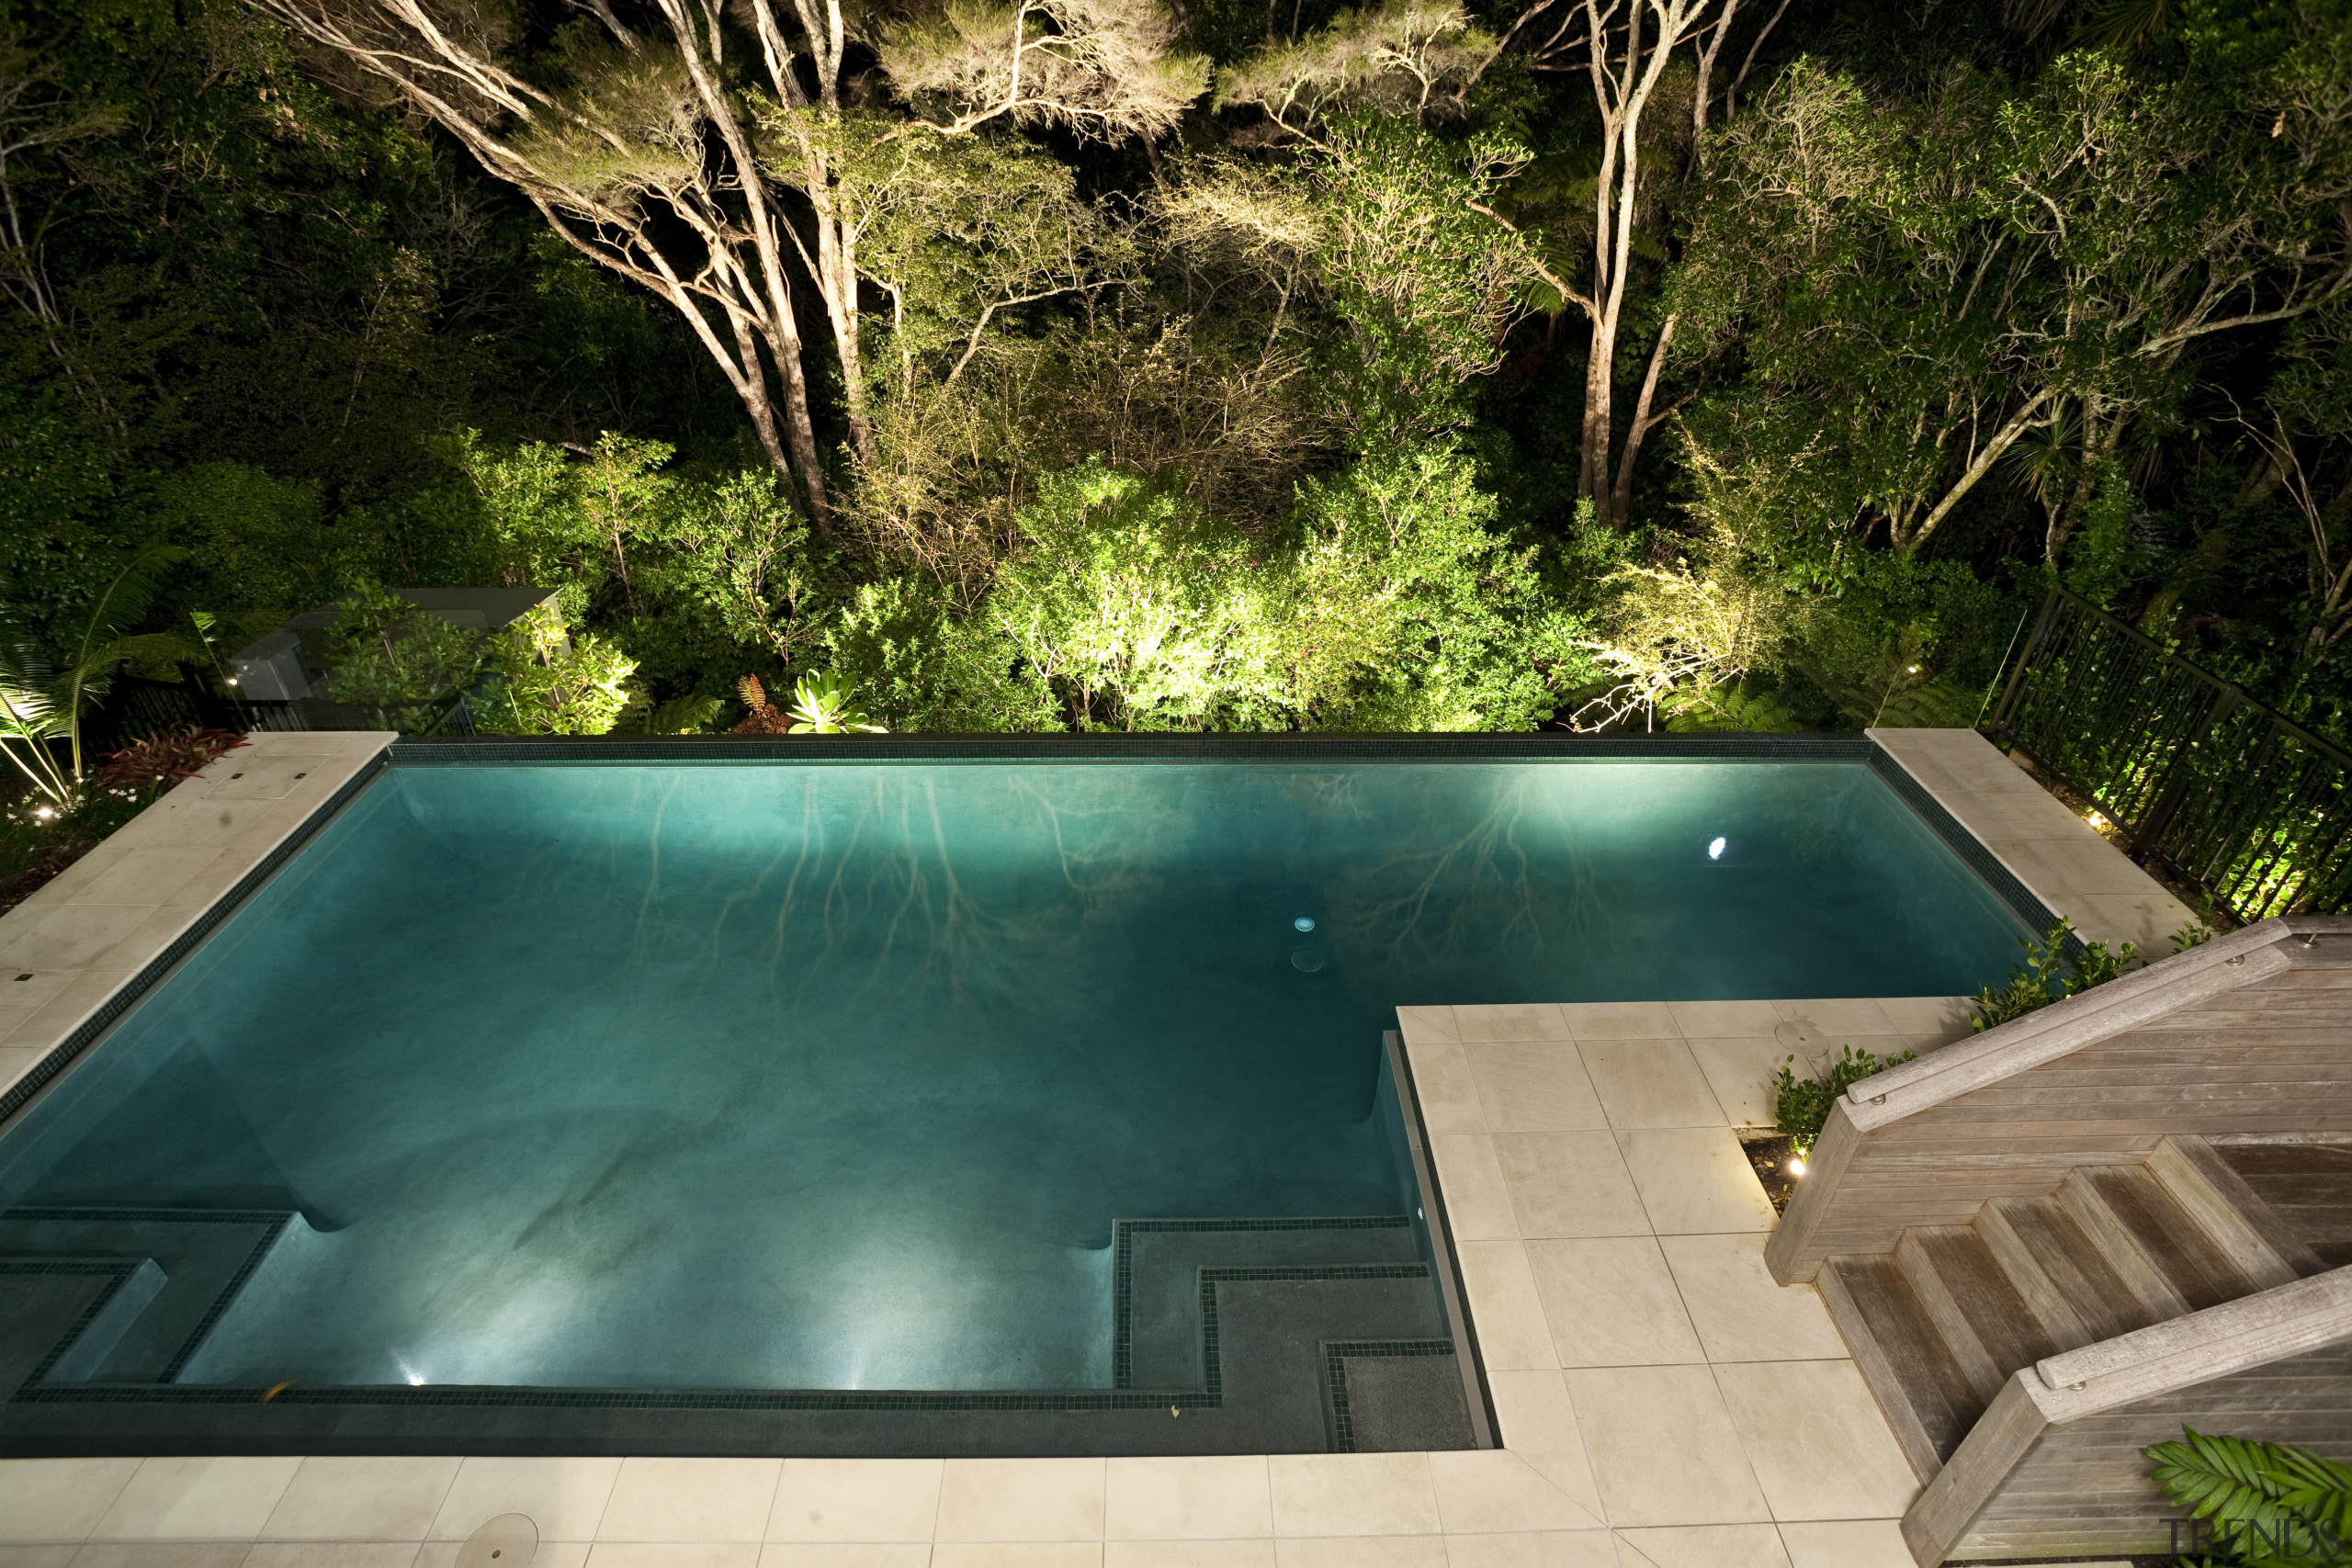 View of sleek poolscape with textured stone wall, backyard, estate, leisure, lighting, plant, property, real estate, swimming pool, water, yard, brown